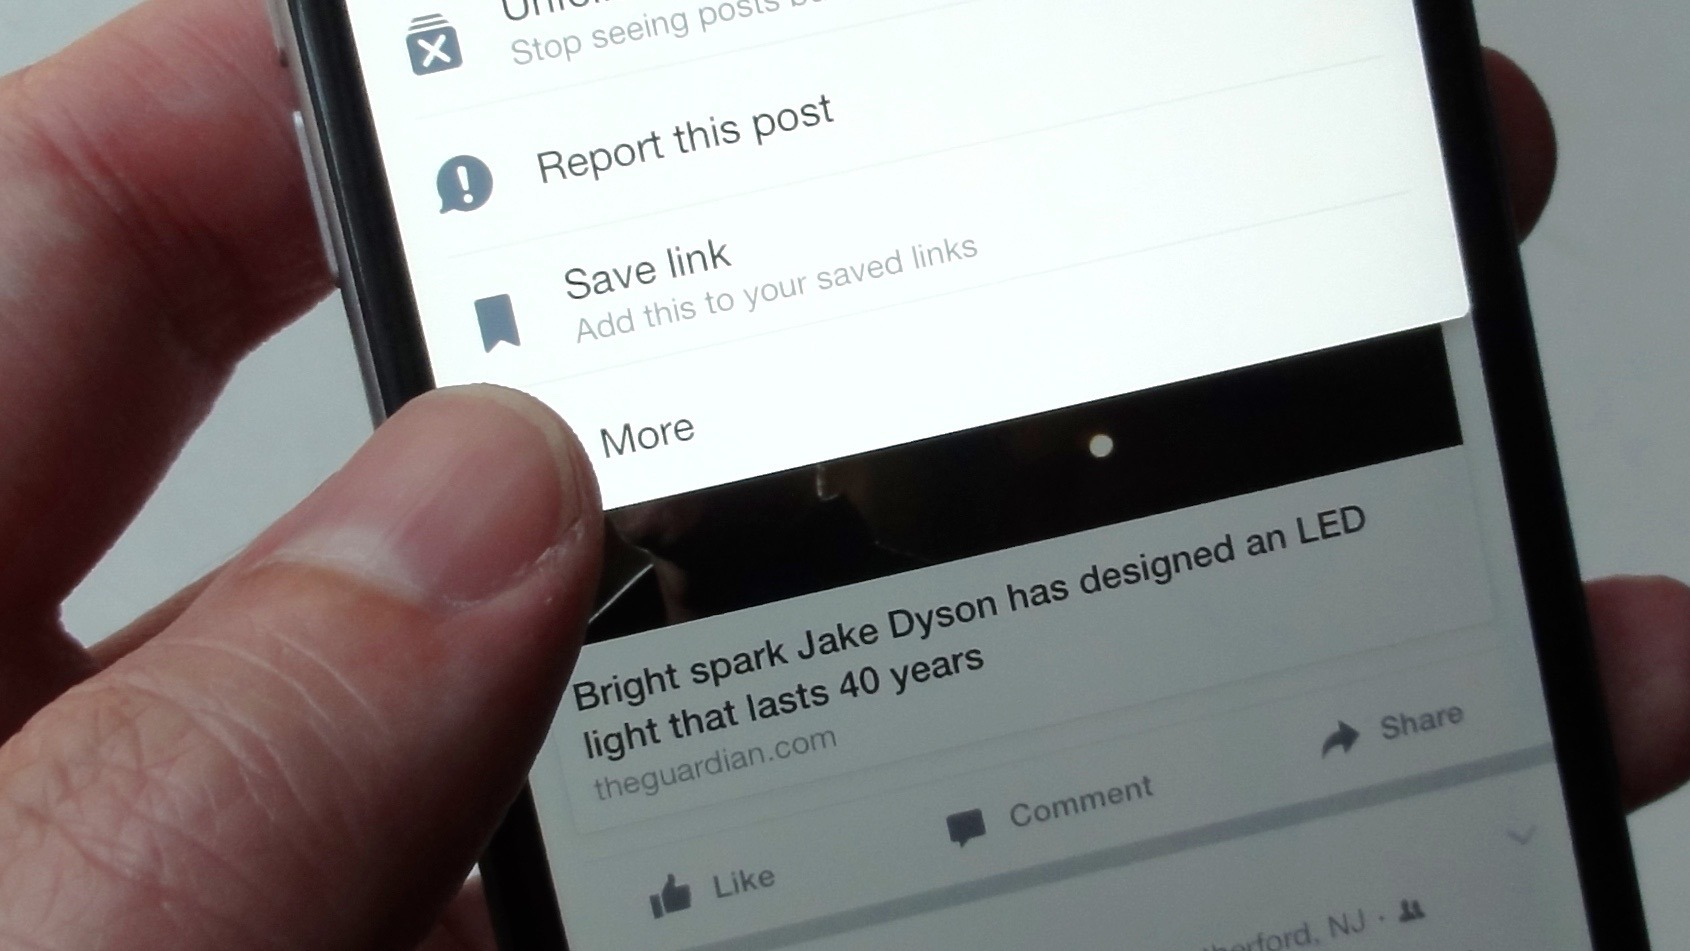 facebook-tips-for-android-and-ios-save-links_2-100597549-orig.jpg